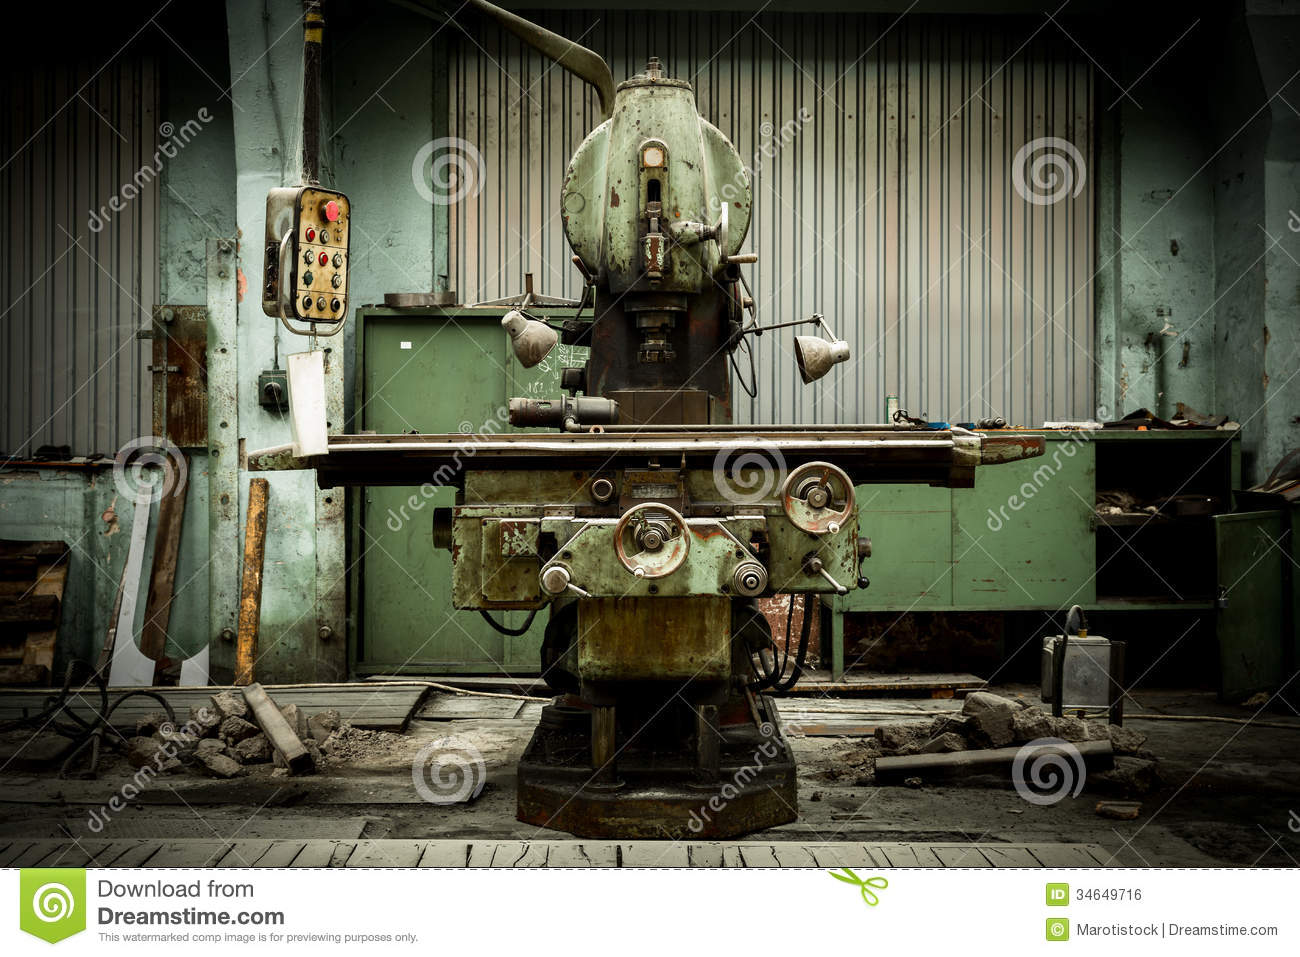 Industrial Machinery submited images.